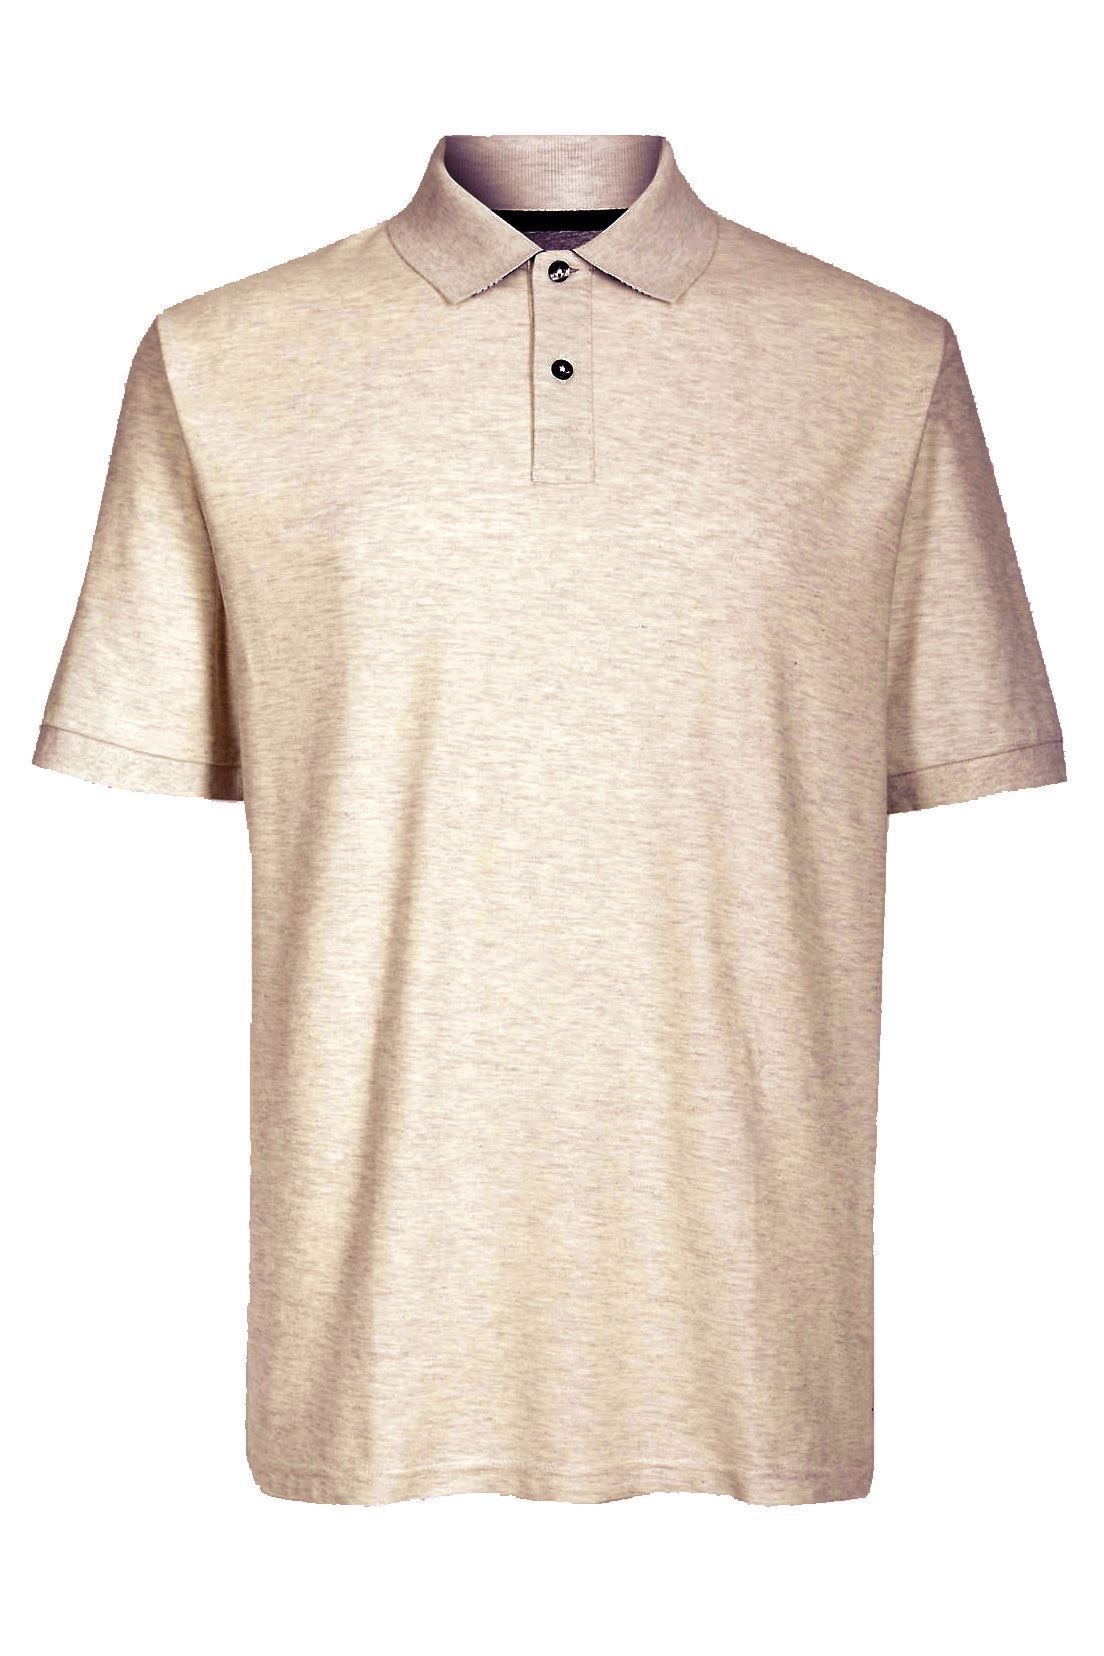 MARKS-amp-SPENCER-Mens-Classic-Cotton-Polo-Shirt-M-amp-S-All-Colours-and-Large-Sizes thumbnail 4